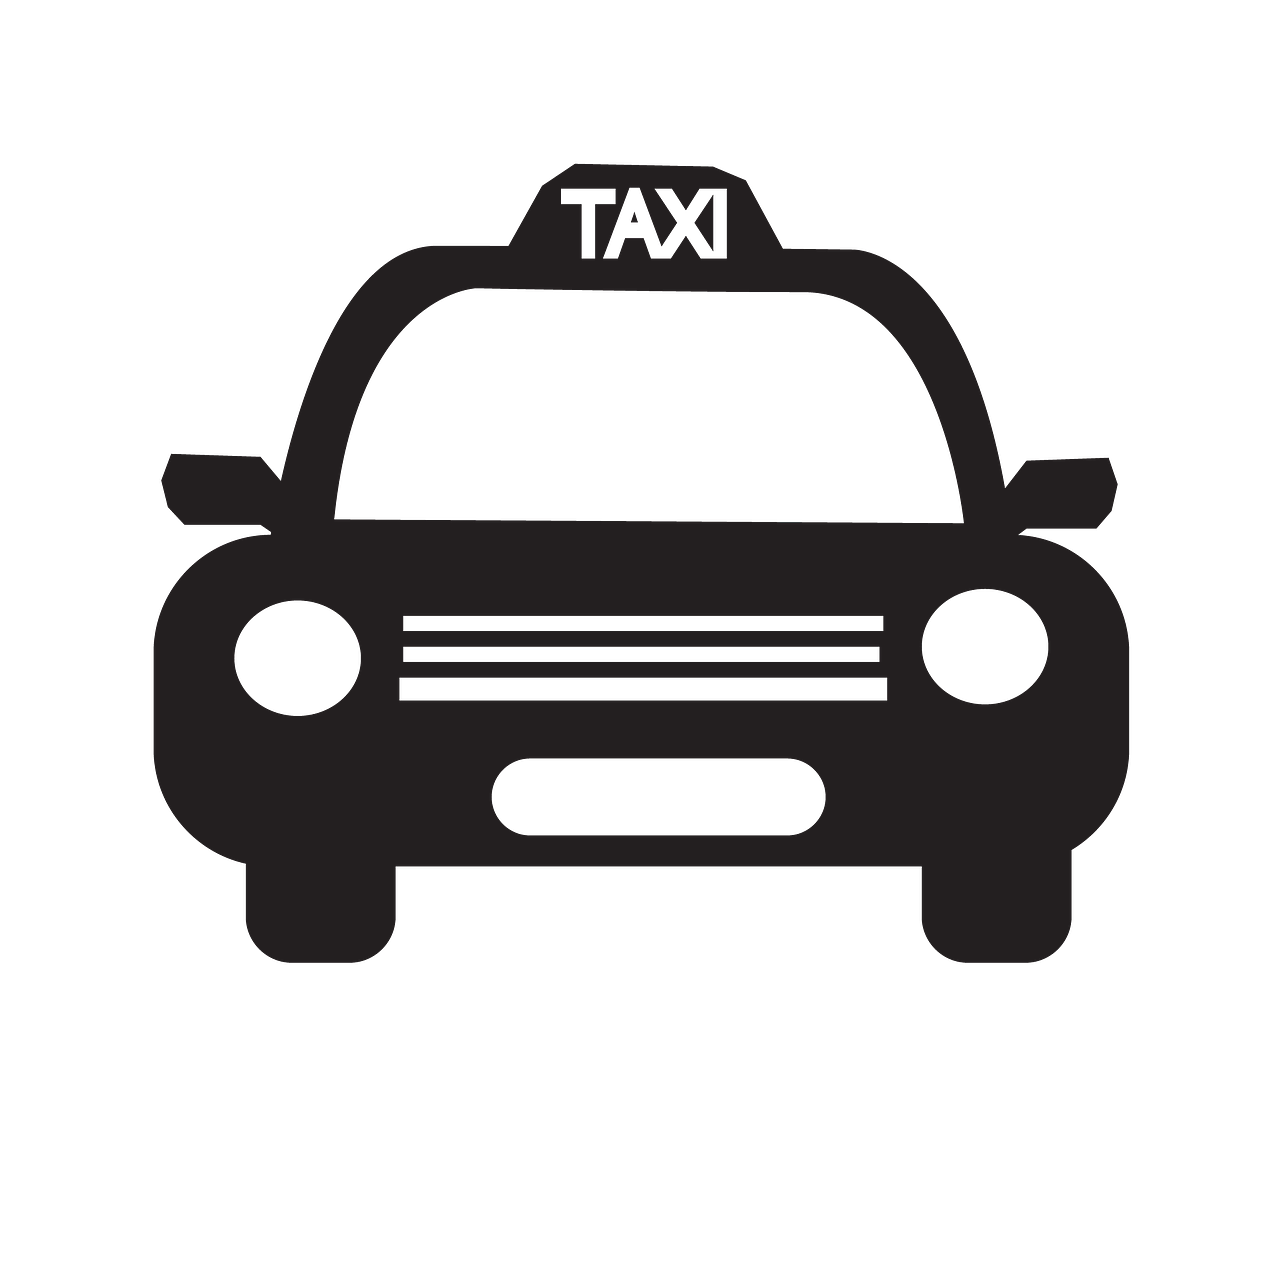 taxi icon auto automobile free photo